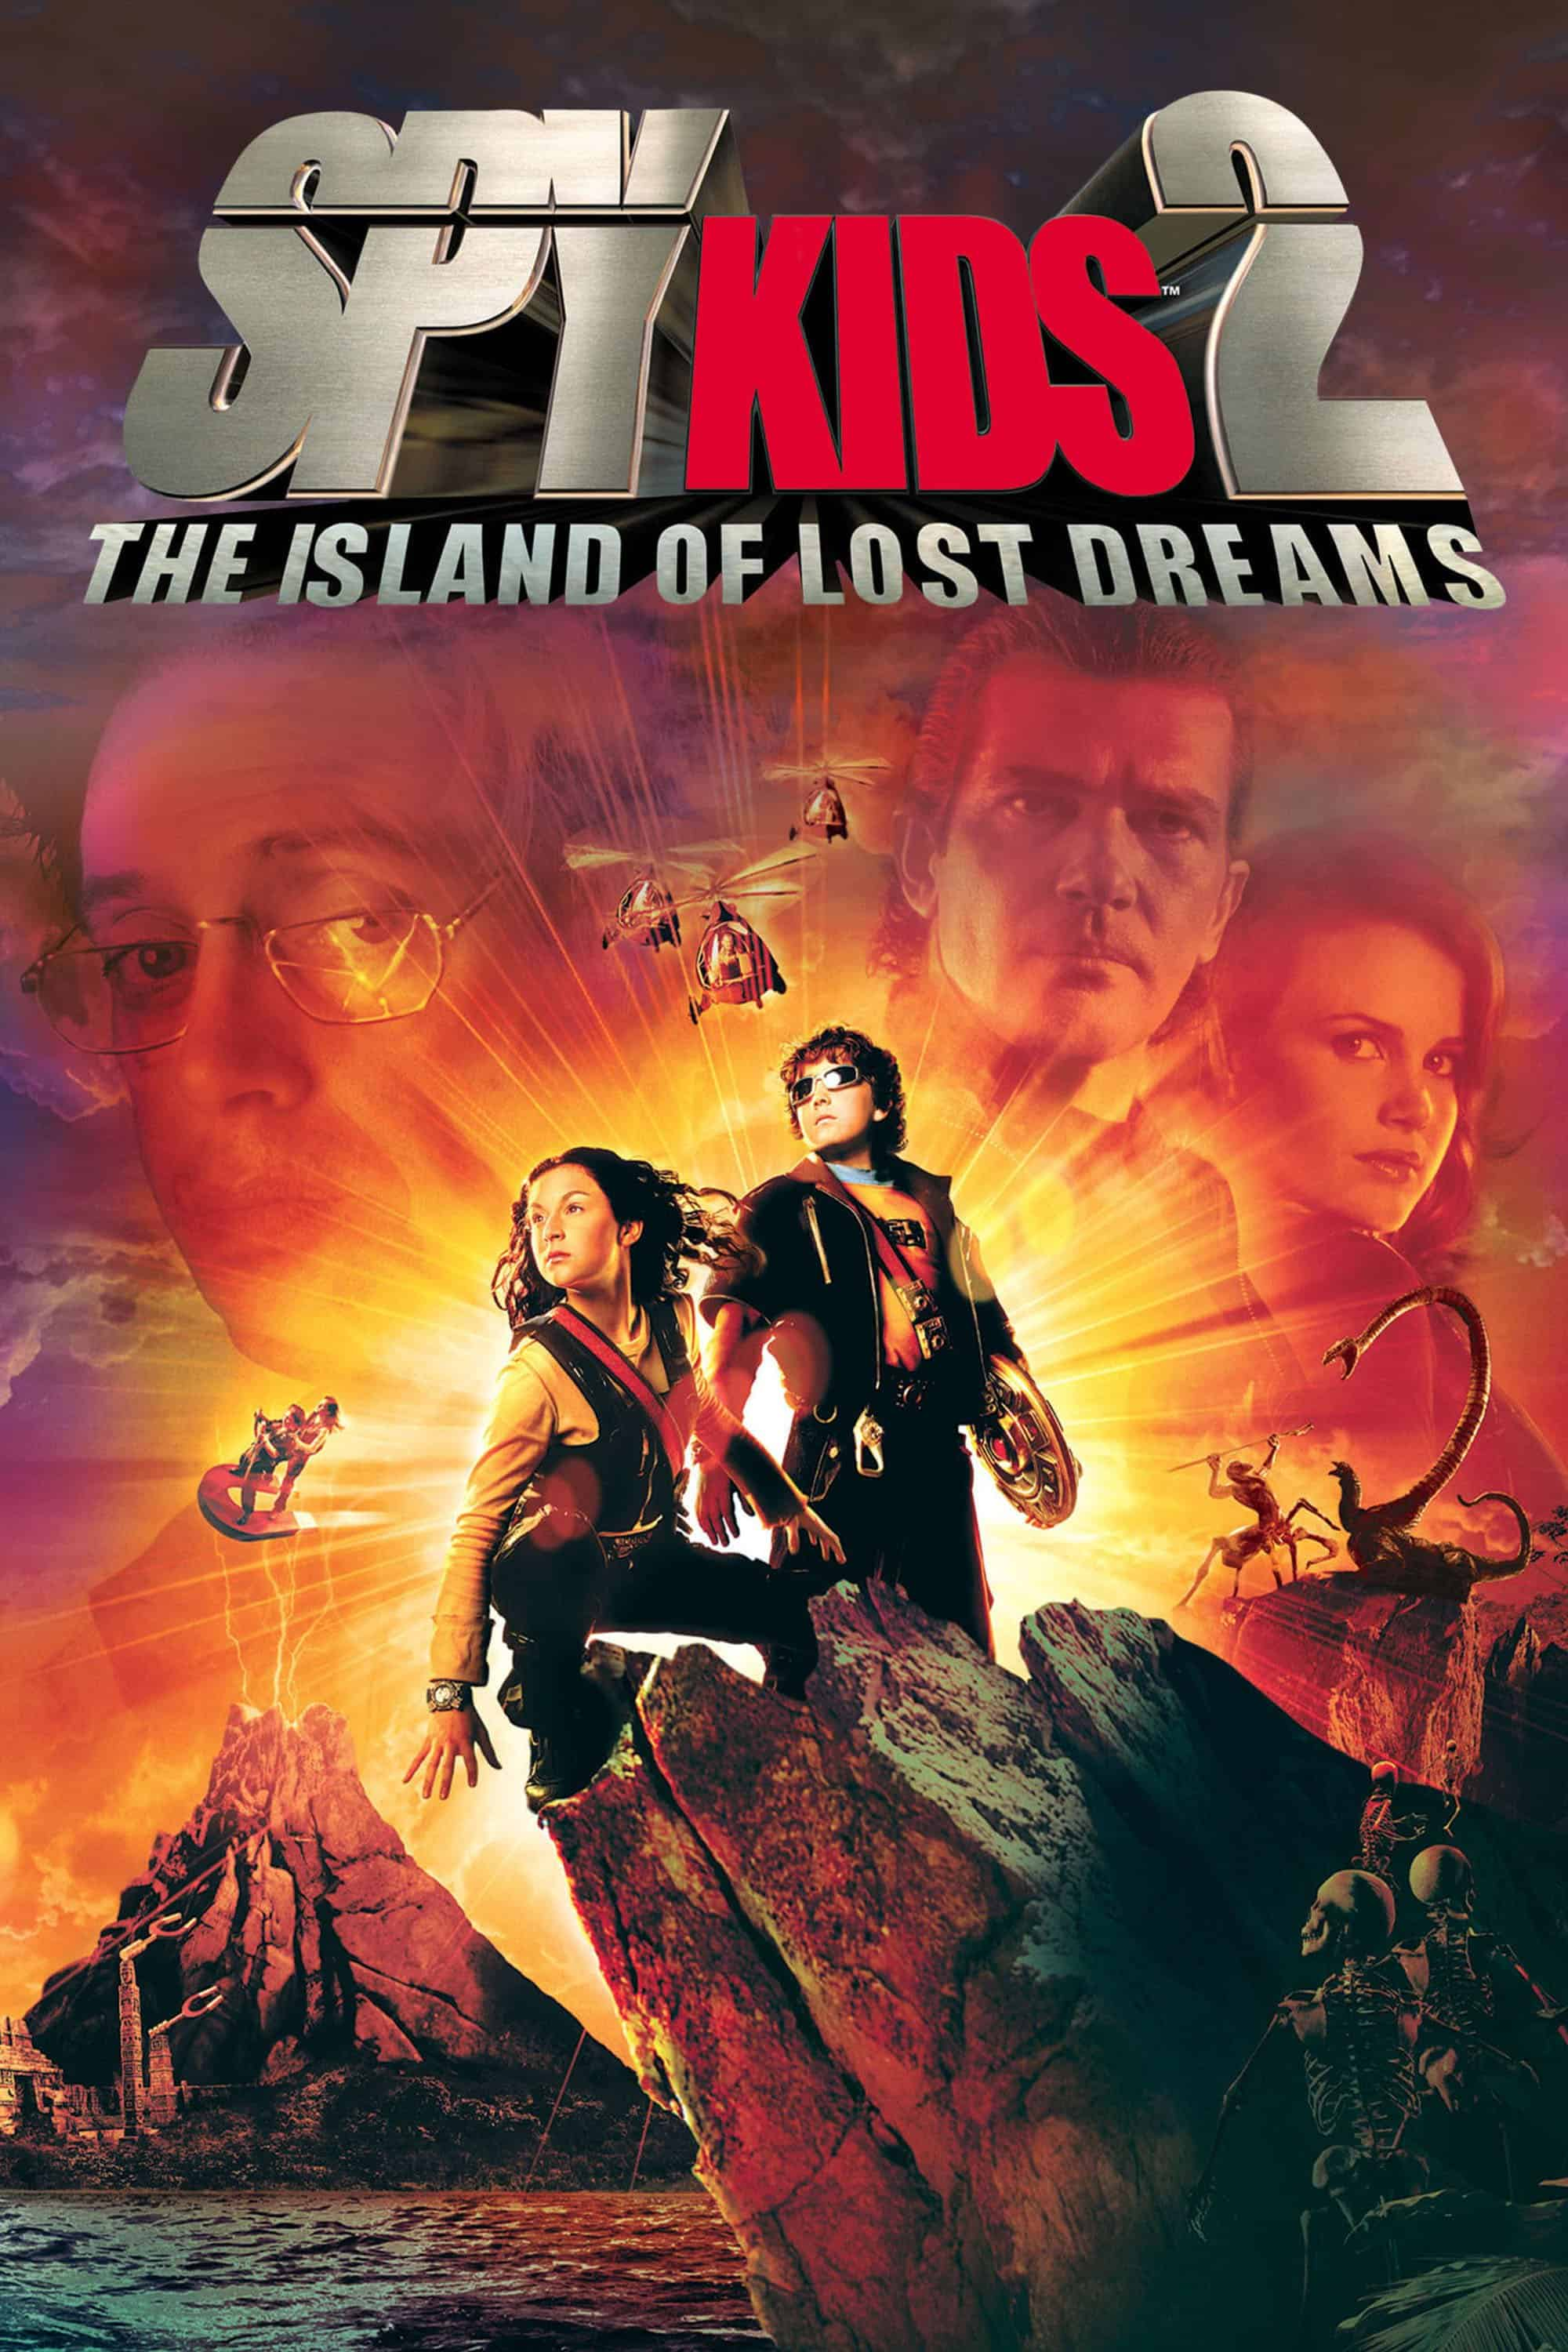 Spy Kids 2: The Island of Lost Dreams, 2002